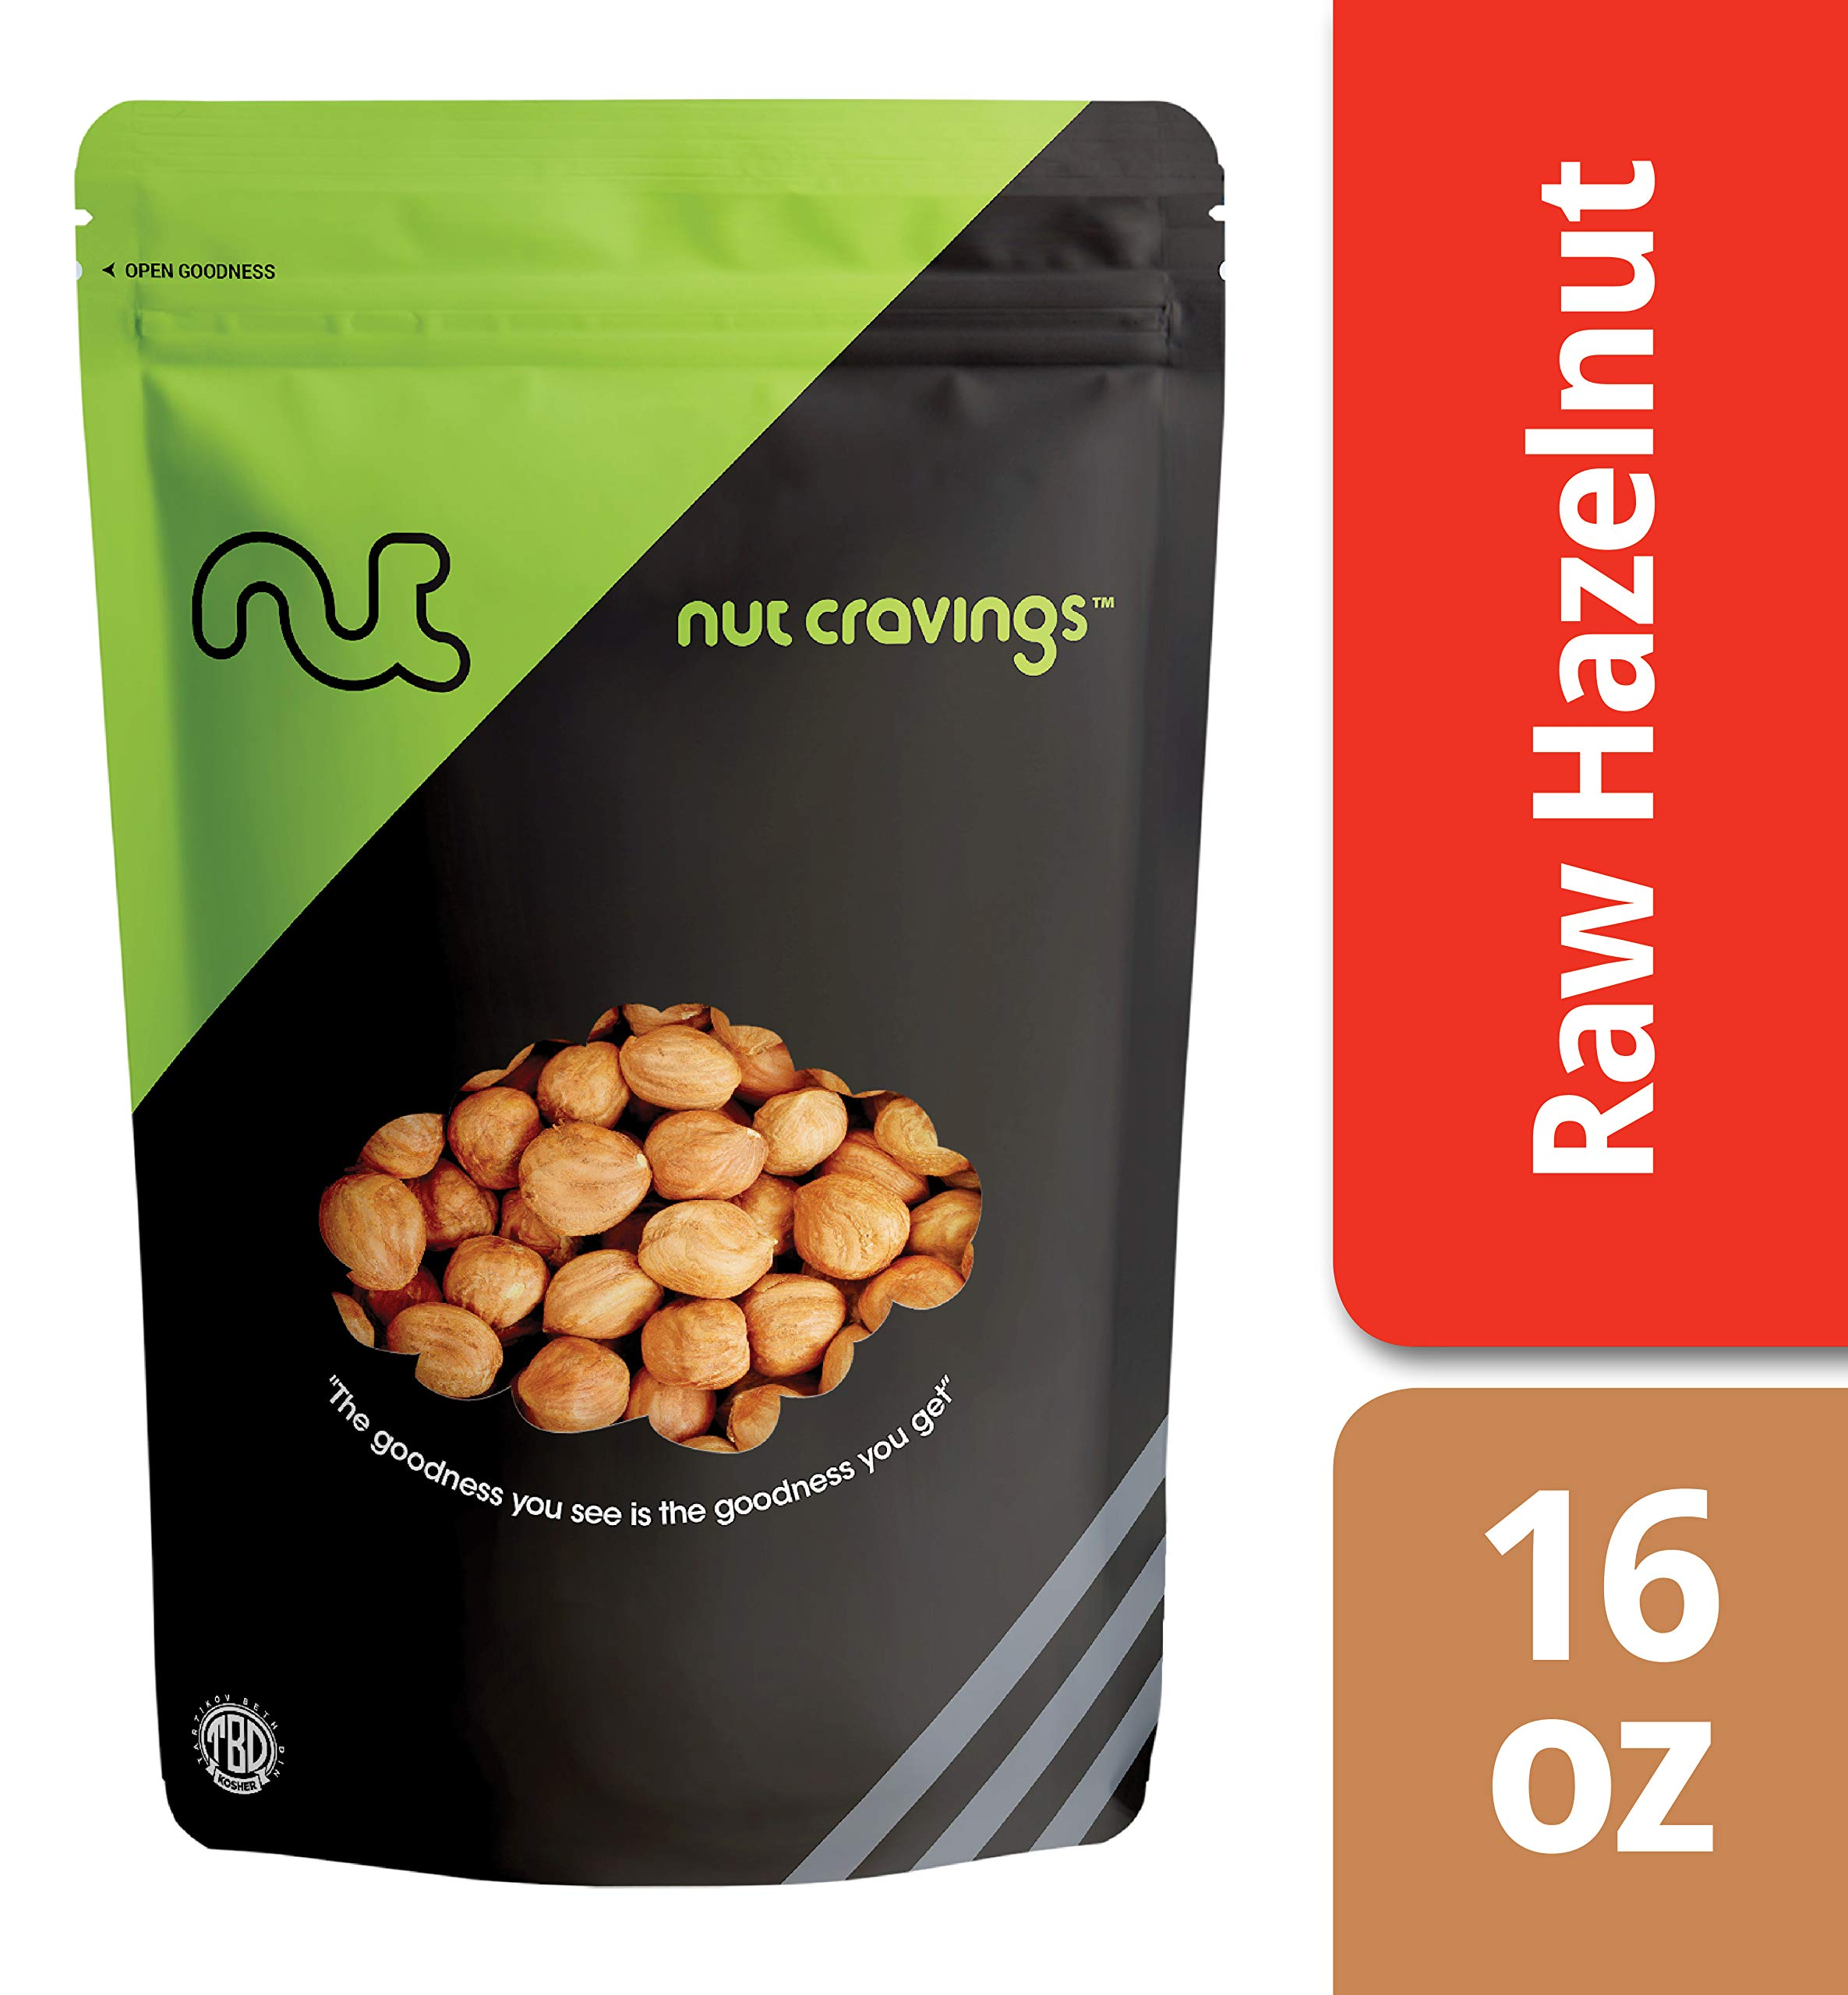 Nut Cravings - Raw Hazelnuts With Skin (1 Pound) – Gourmet Resealable Pack of Shelled Filberts – 16 Ounce